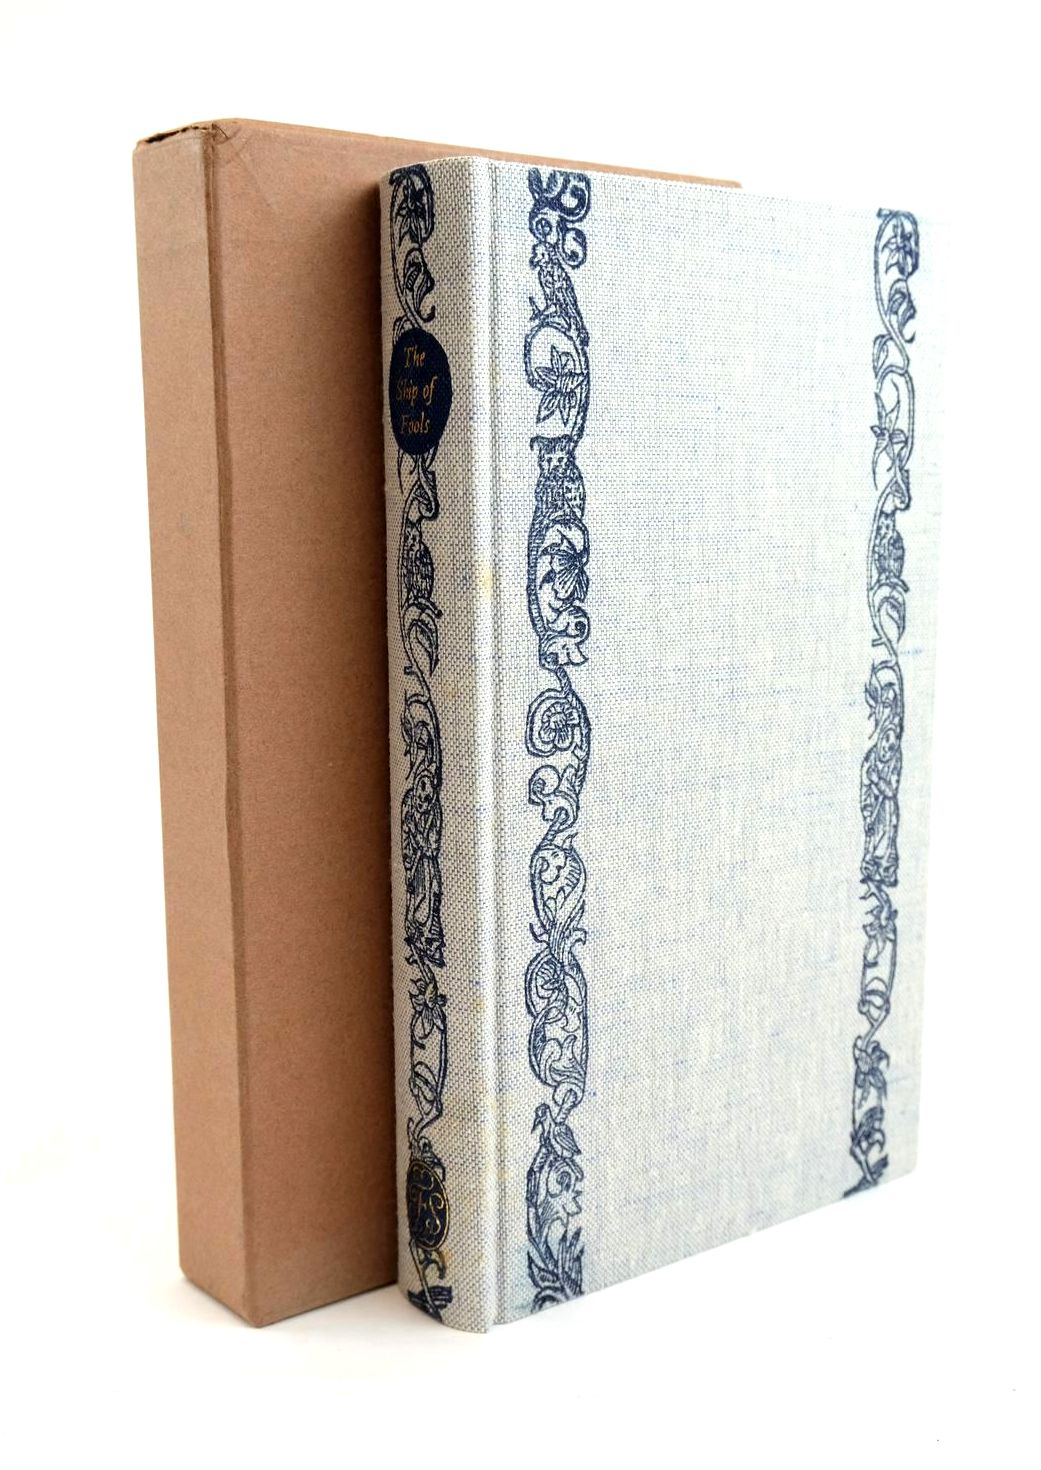 Photo of THE SHIP OF FOOLS written by Brant, Sebastian Gillis, William published by Folio Society (STOCK CODE: 1321546)  for sale by Stella & Rose's Books